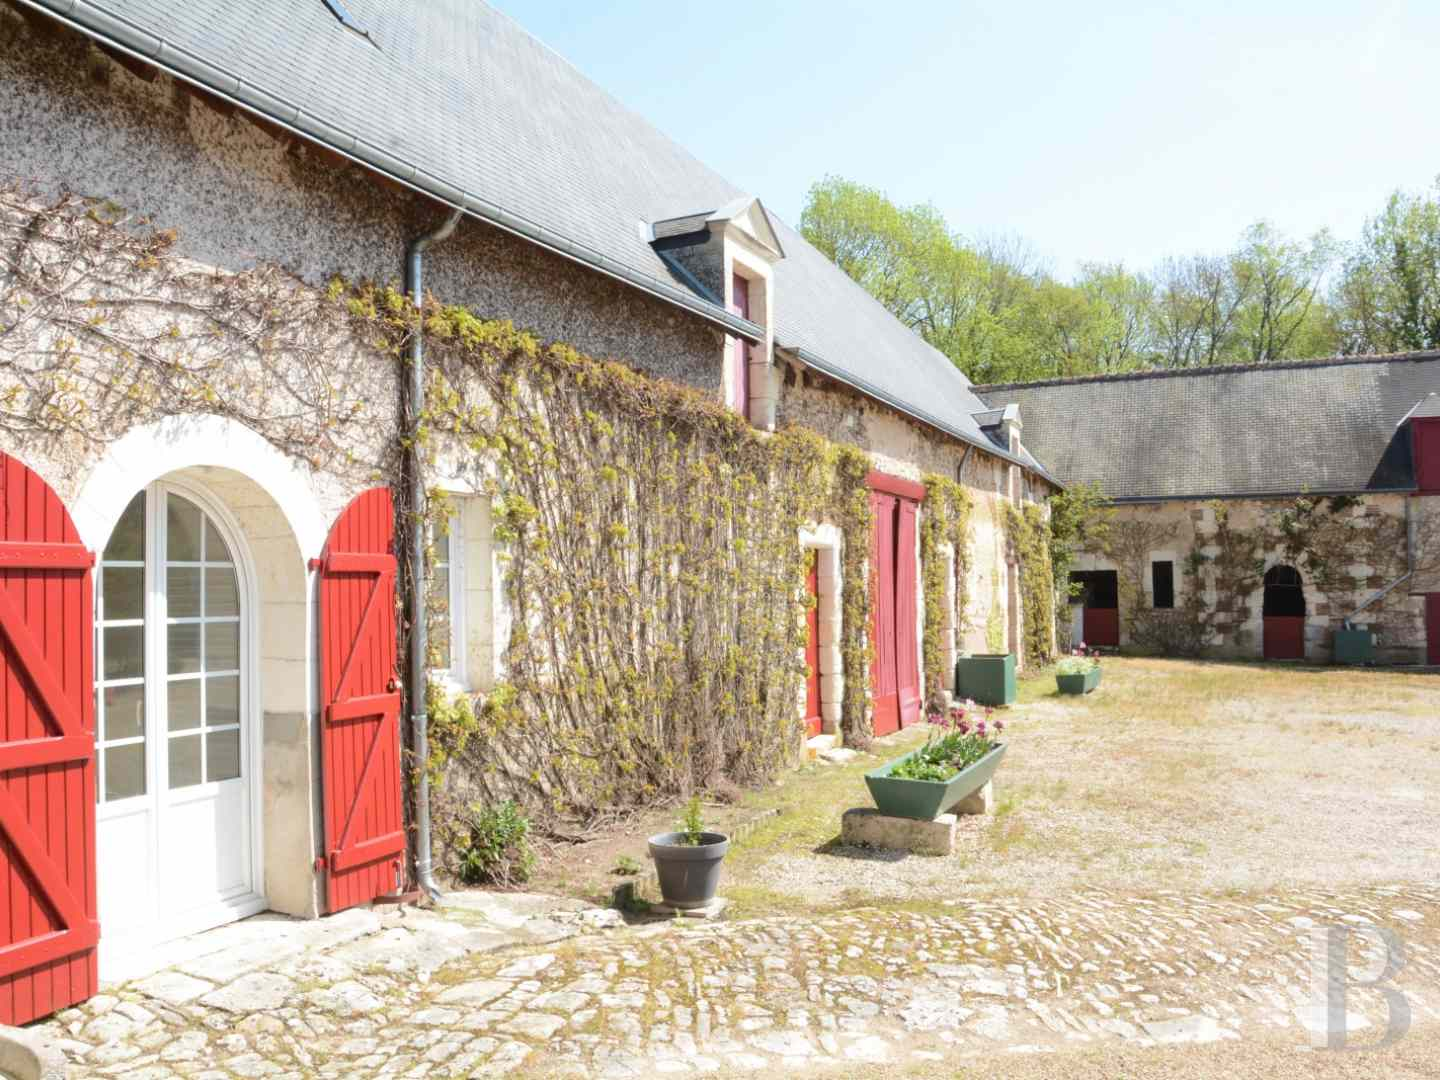 property for sale France center val de loire hunting grounds - 8 zoom